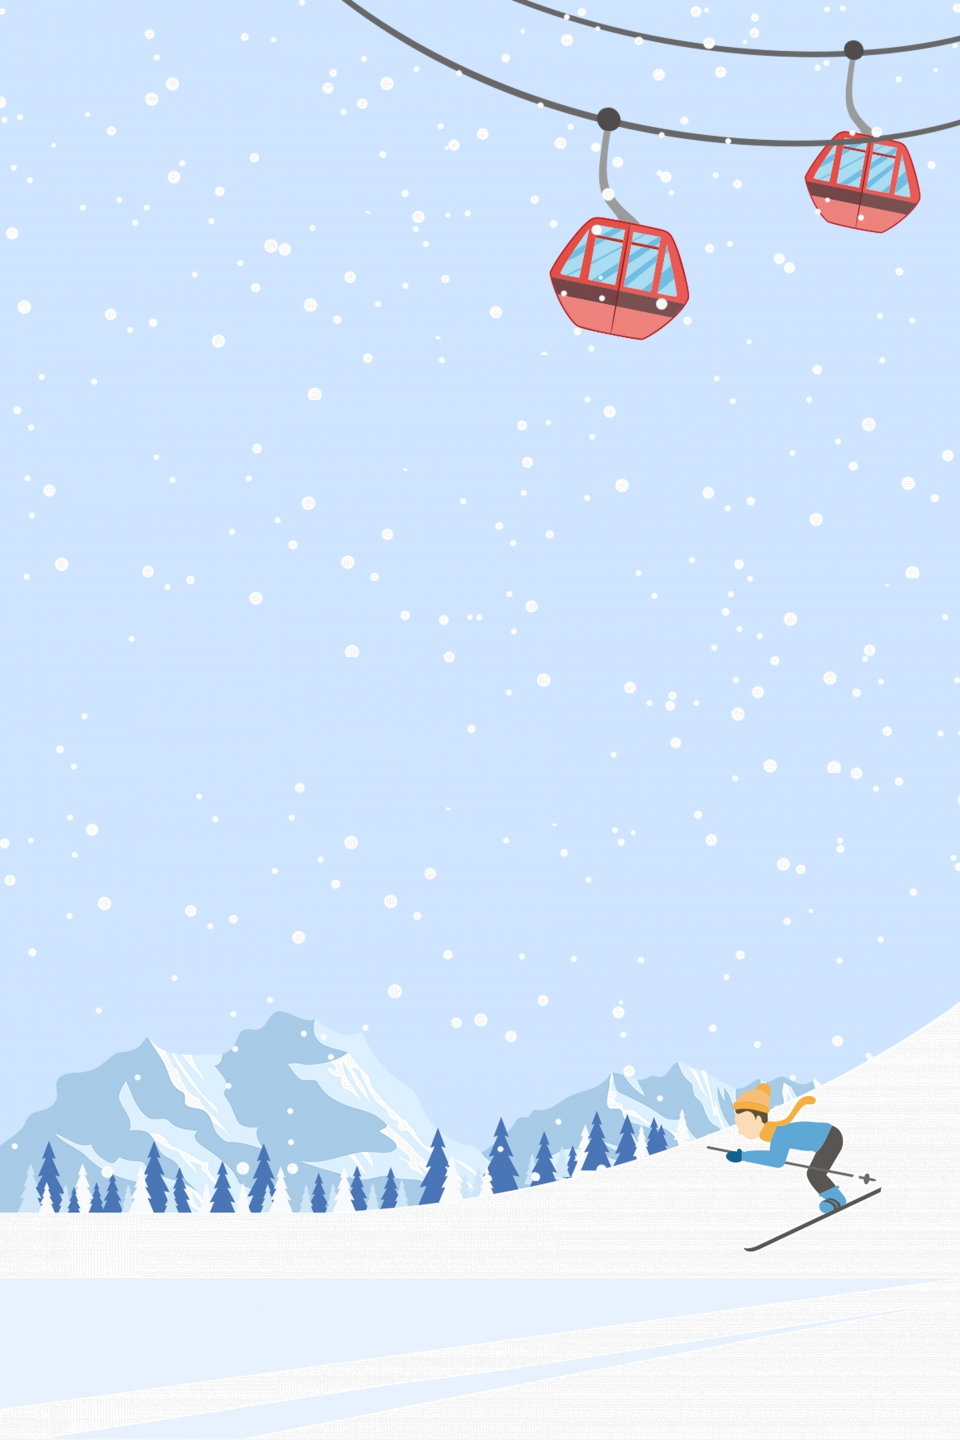 Cartoon Skiing Culture Ski Advertising Background Material Ski Poster Snowboarding Skiing Background Image For Free Download